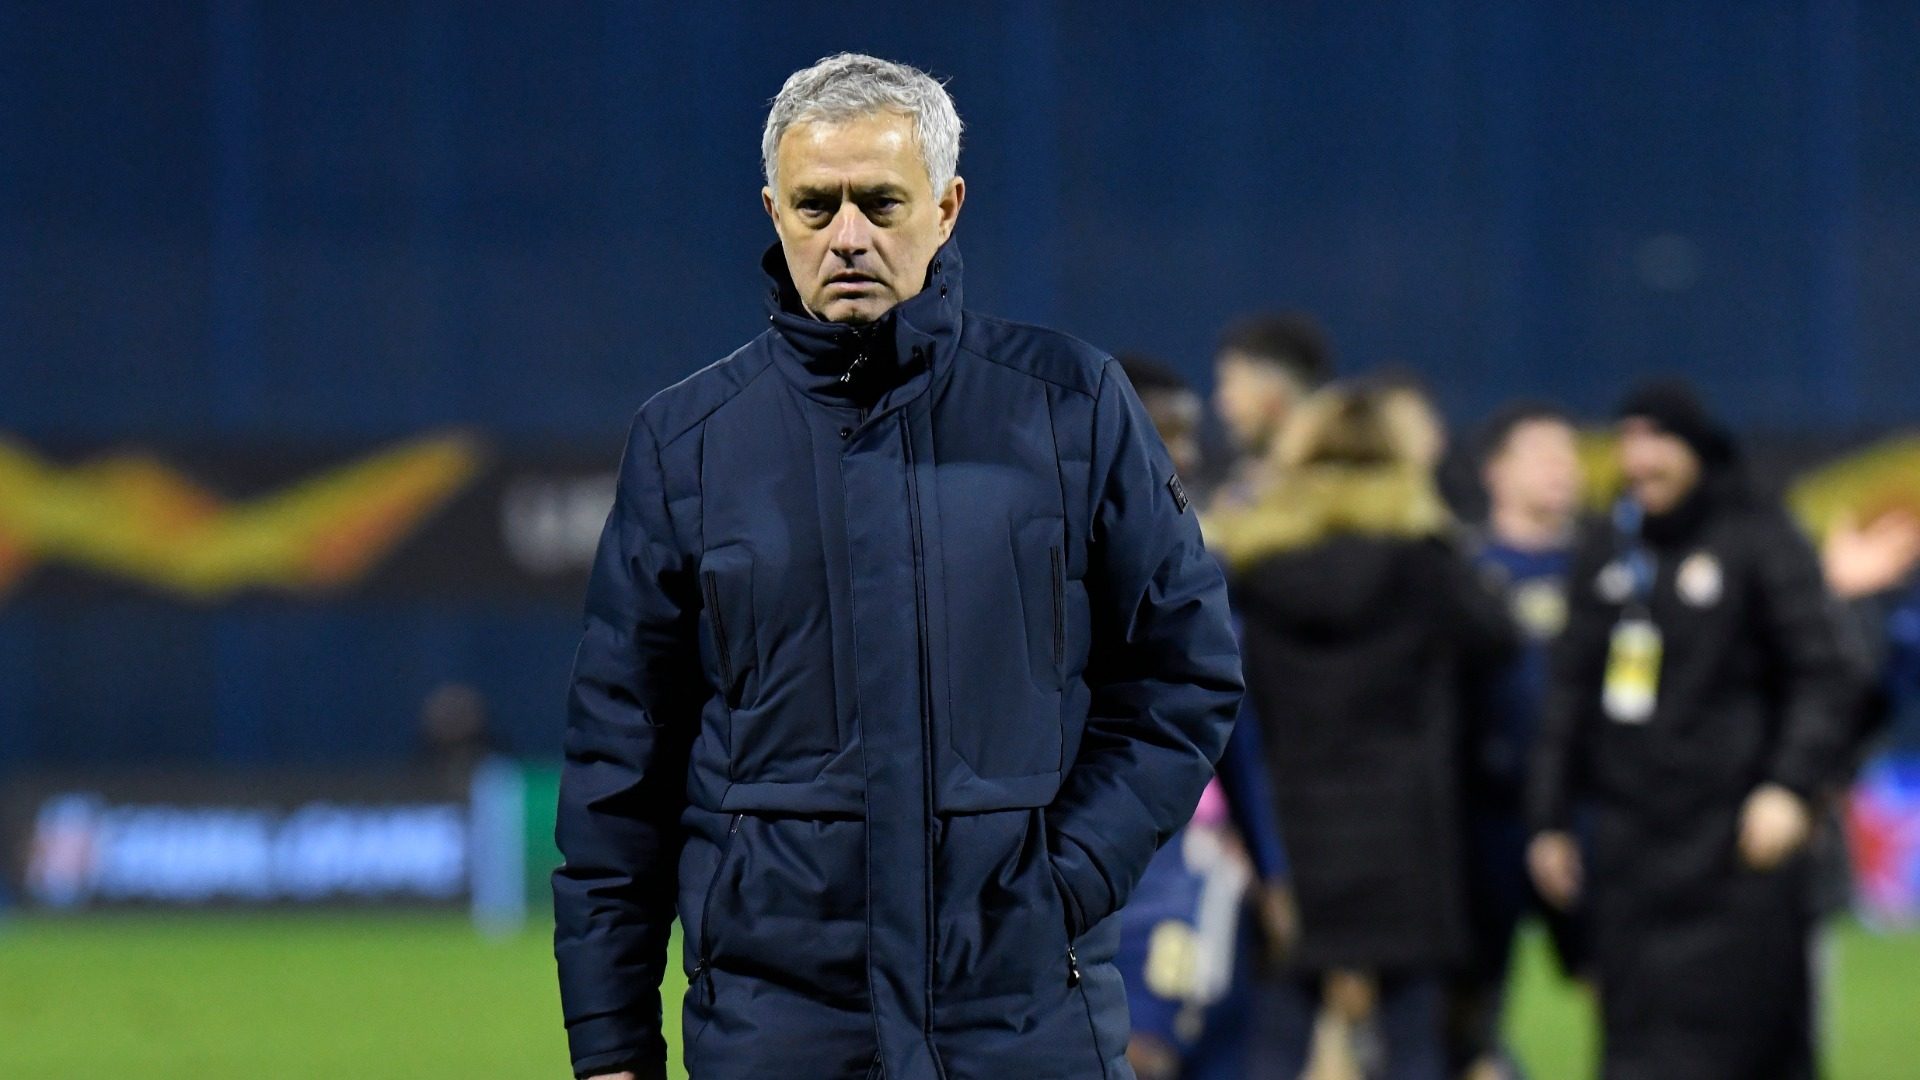 Mourinho 'more than sad' after Tottenham humiliation in Zagreb